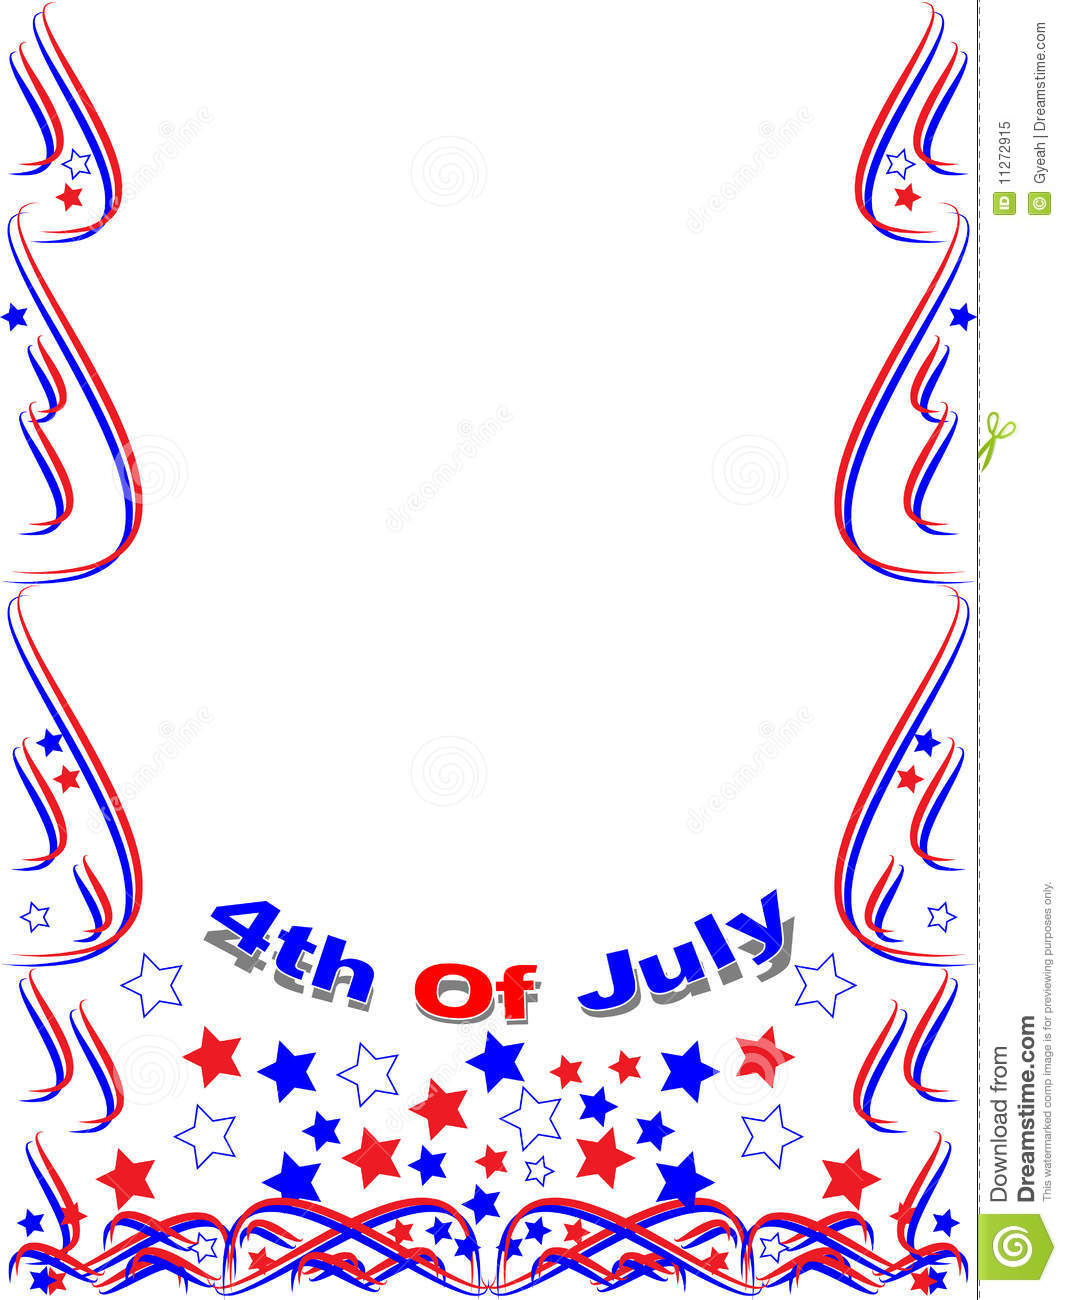 Patriotic Frame Border 4th July Stock Vector - Illustration of ...